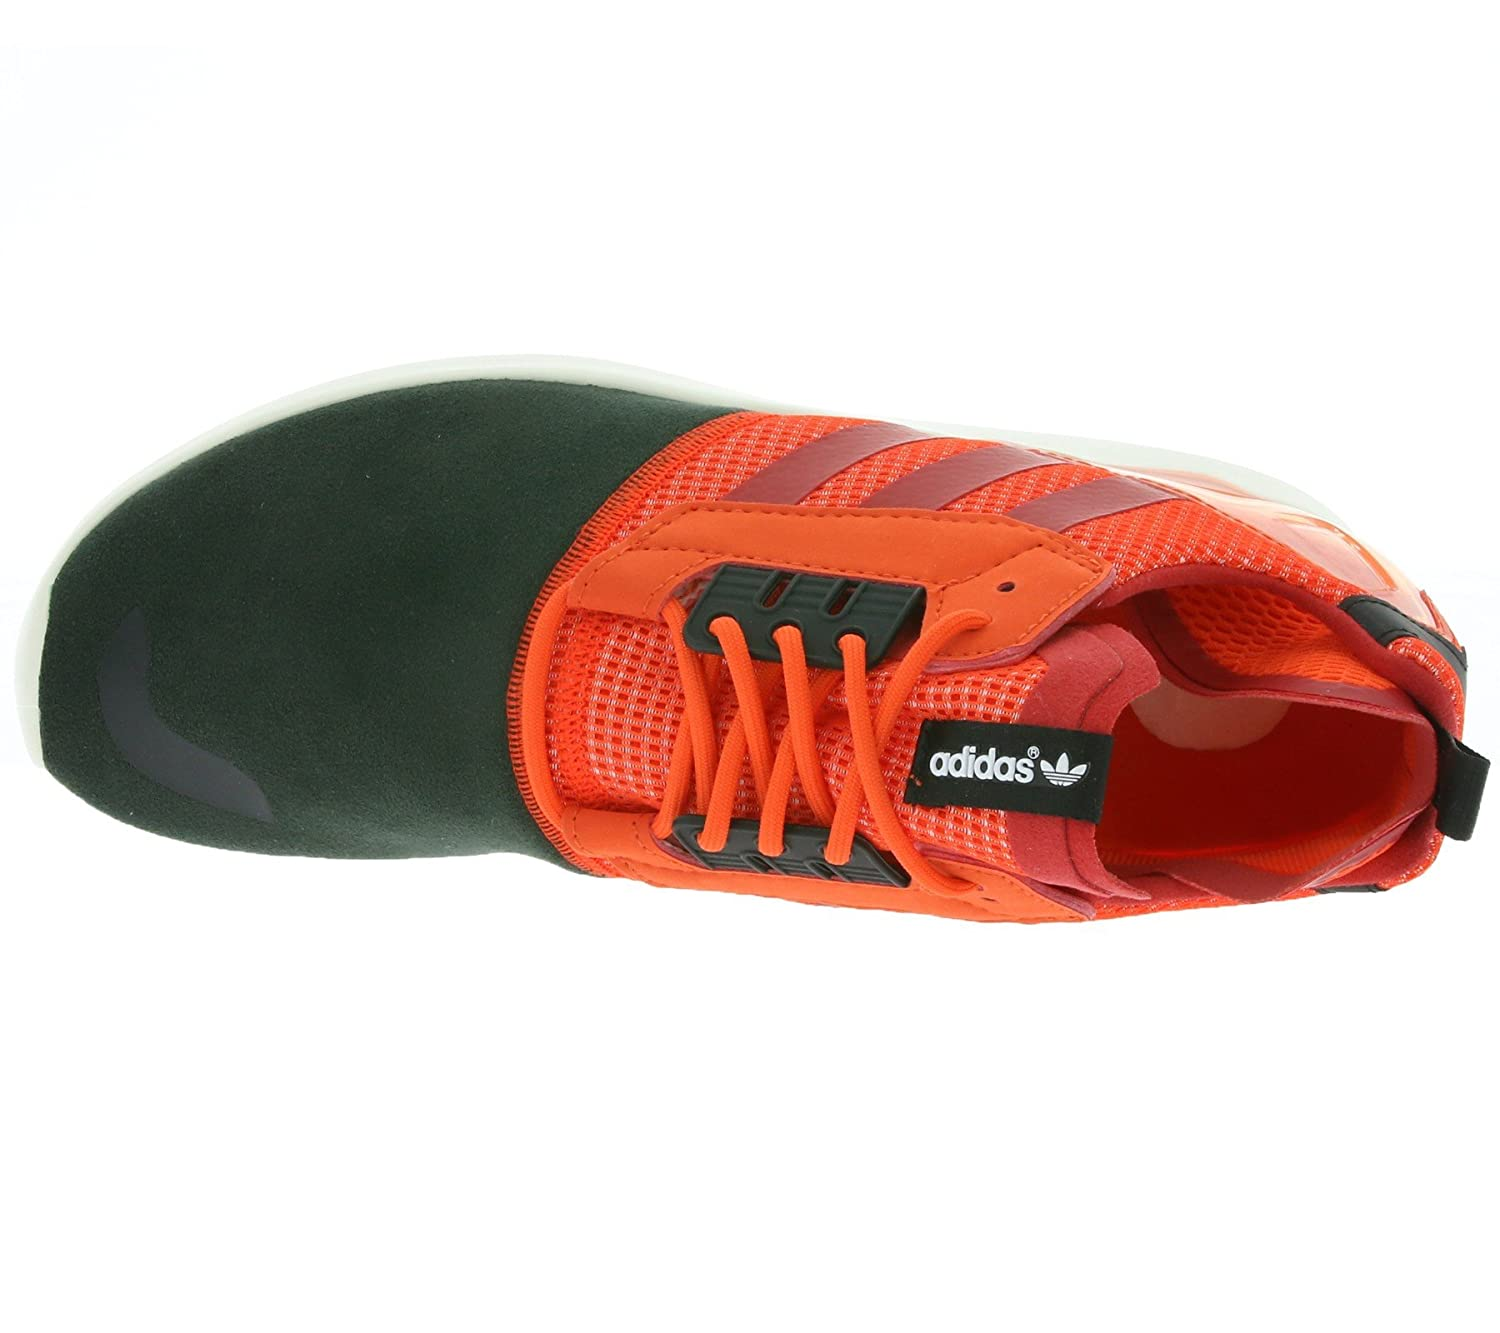 promo code 768e6 d326a Amazon.com   adidas Originals Men s Adidas  ZX 8000 Boost  Sneakers EUR 43 1  3 Red and Black   Road Running